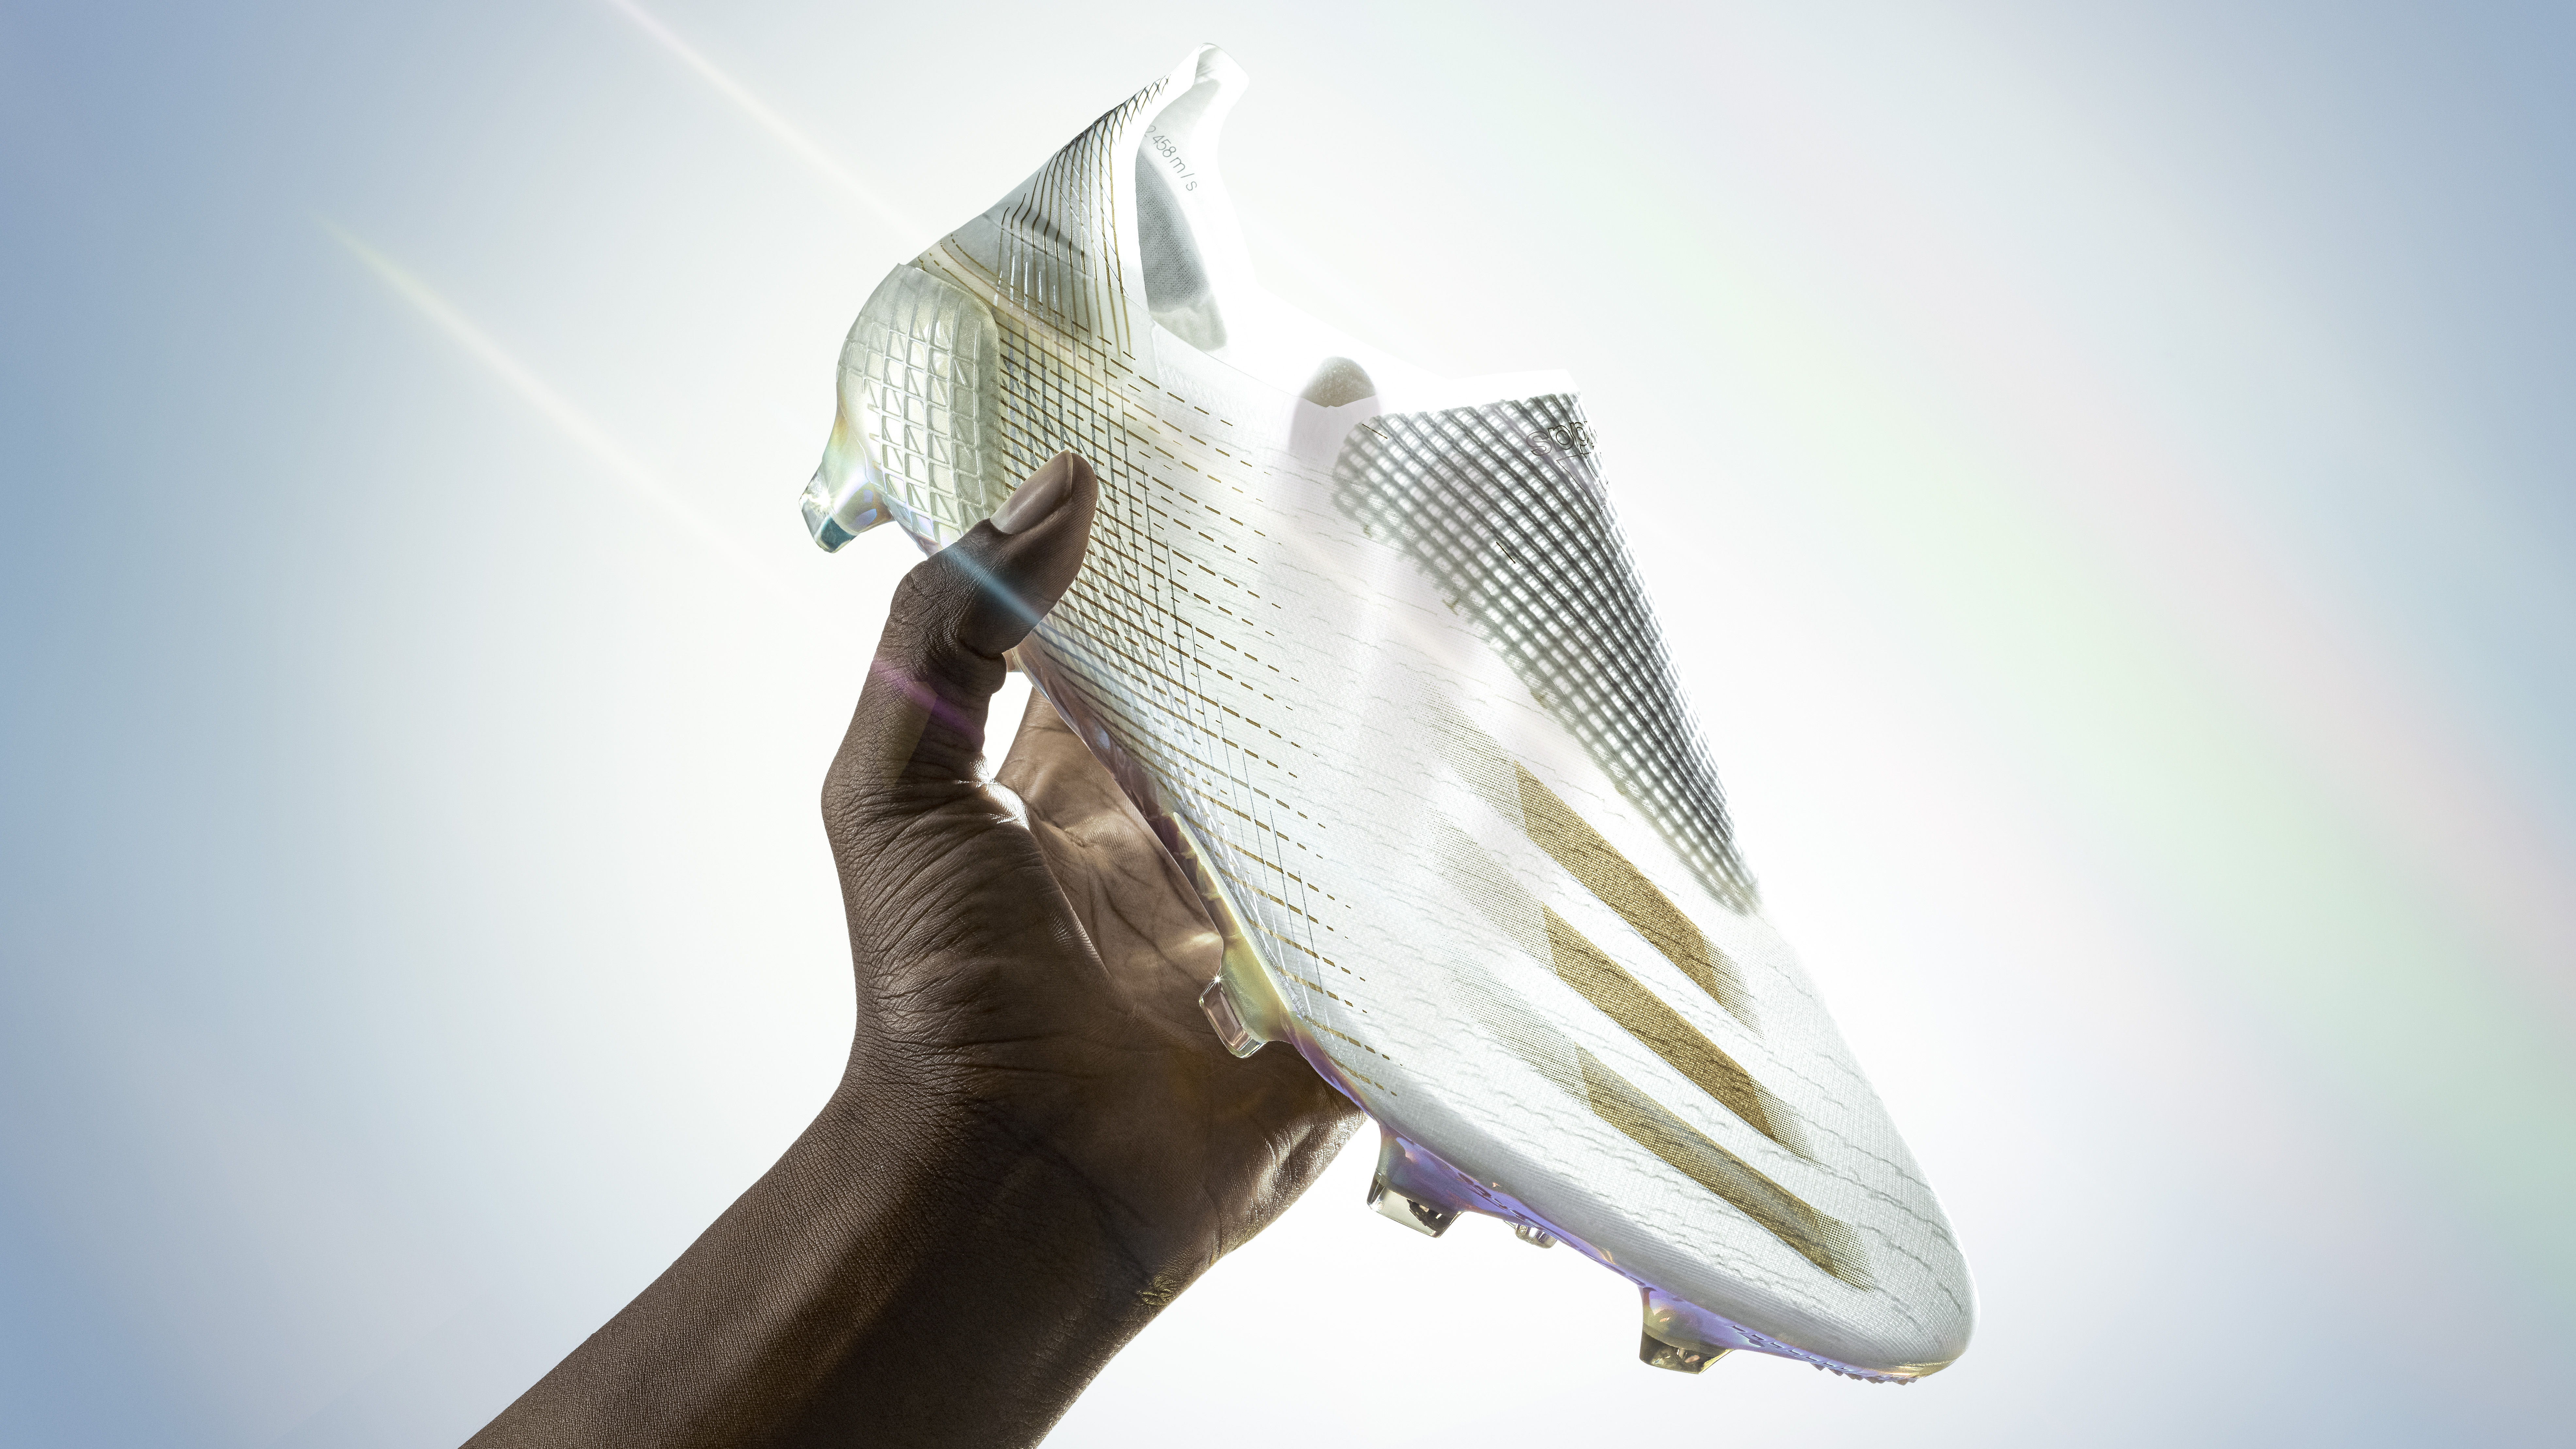 Mo Salah and Benzema's new boots vacuum seal on, to give them even greater speed + precision